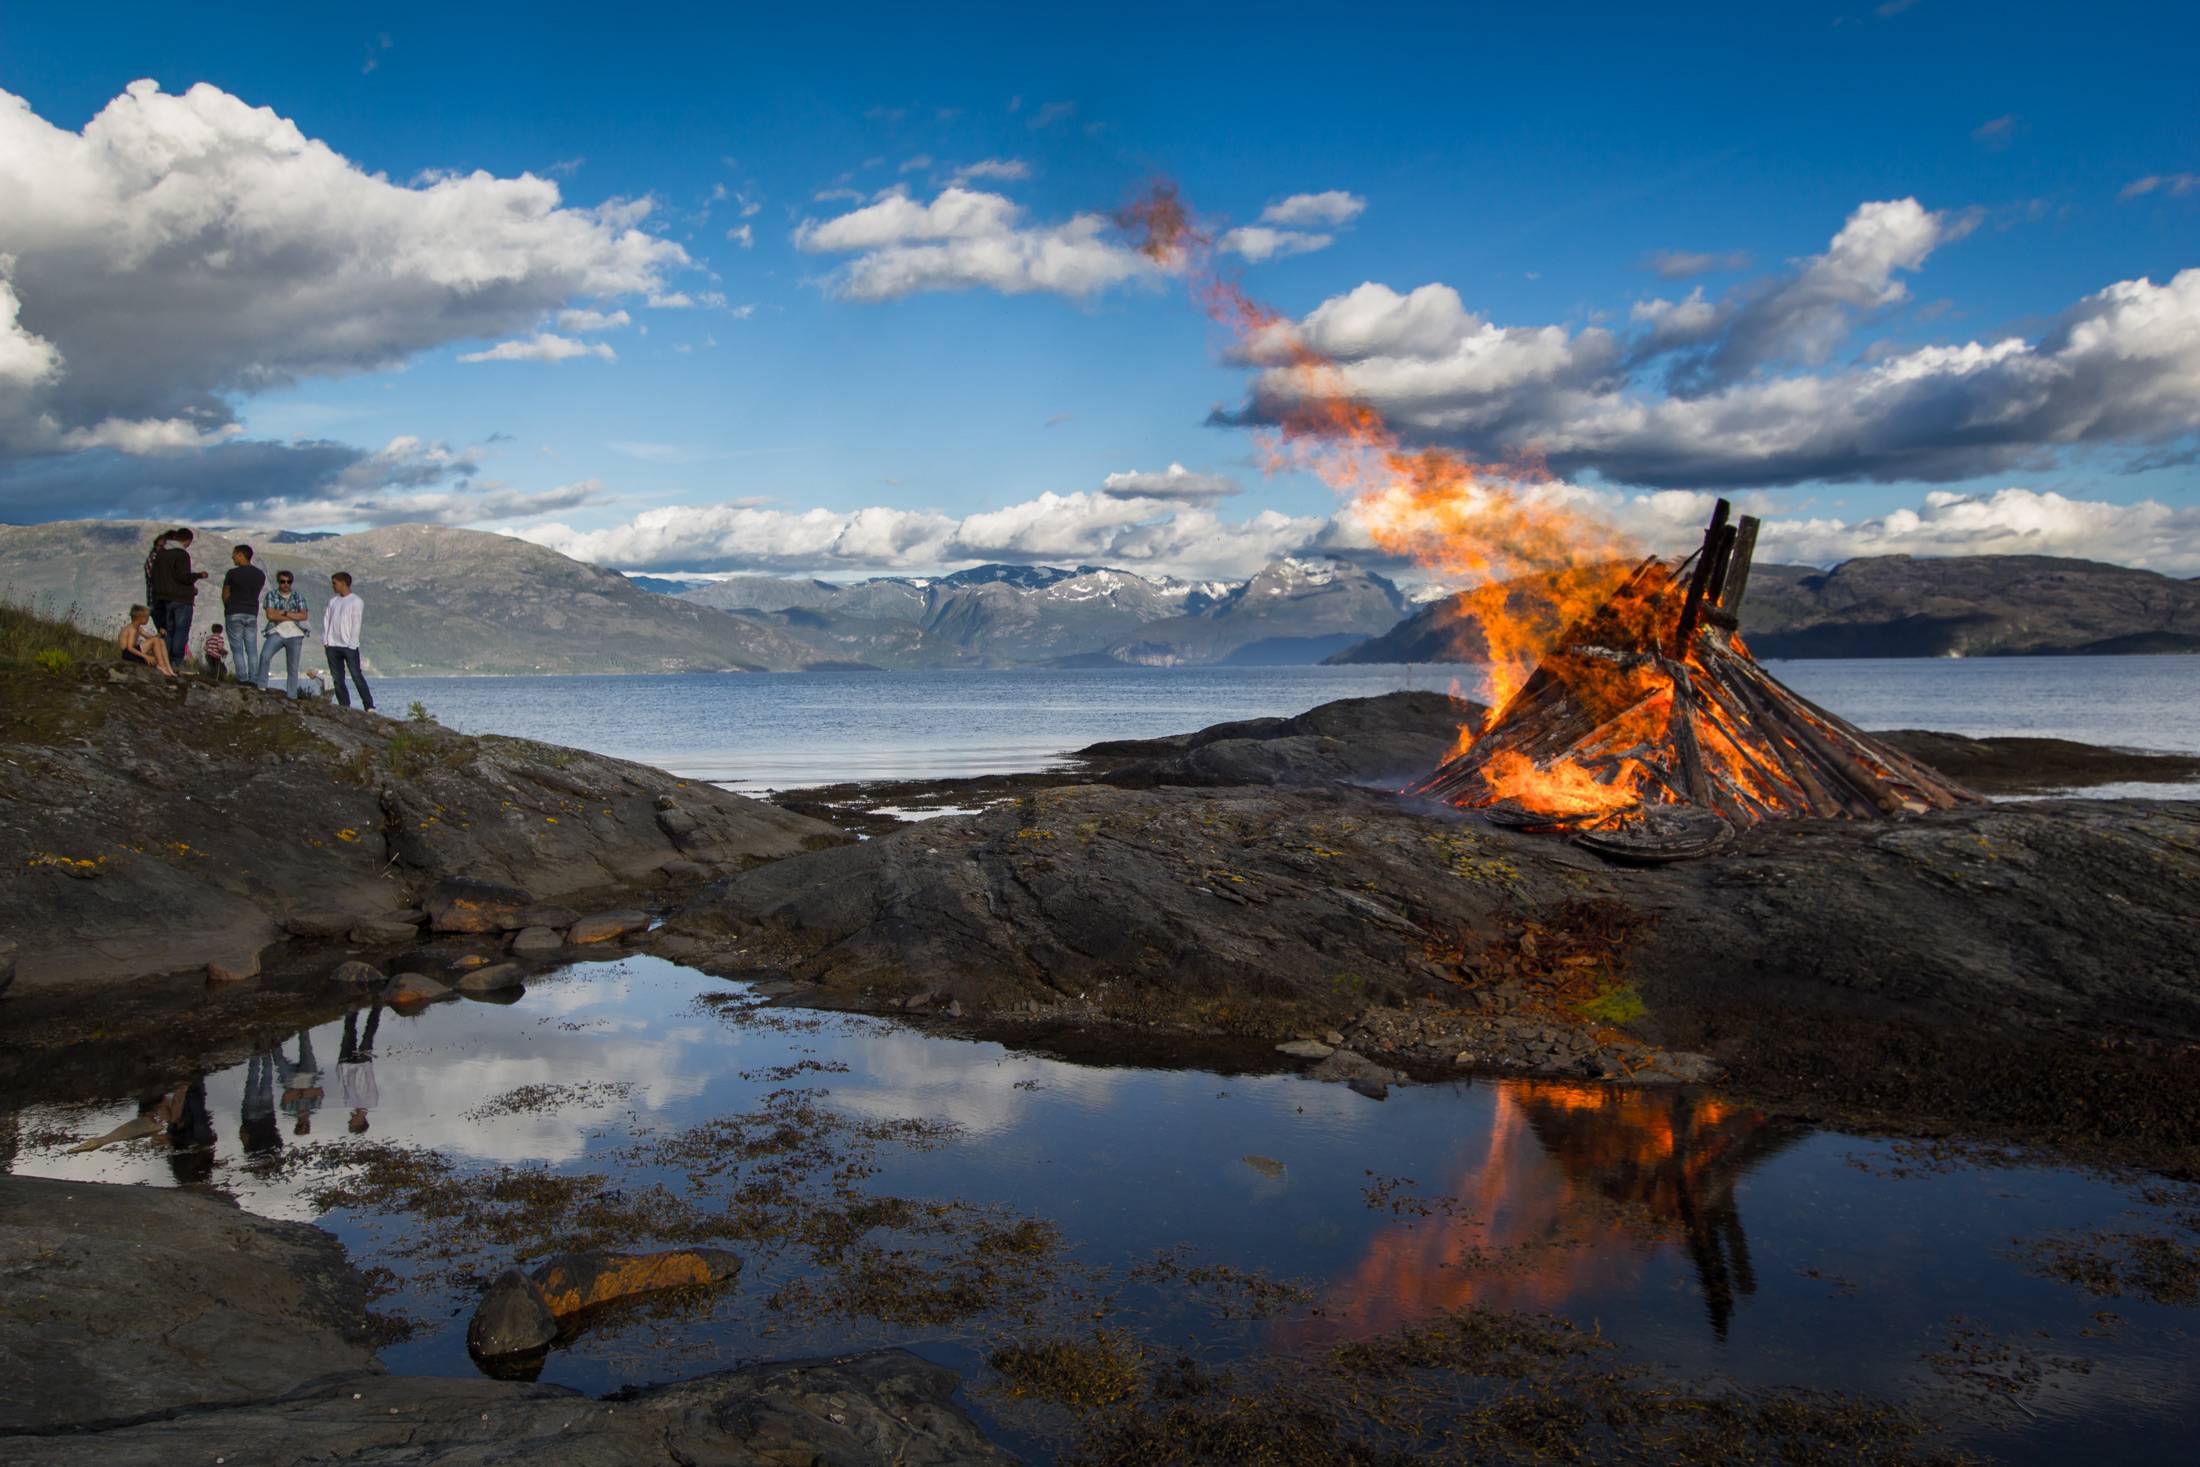 A Bonfire at Omastrand, Hardanger in Norway